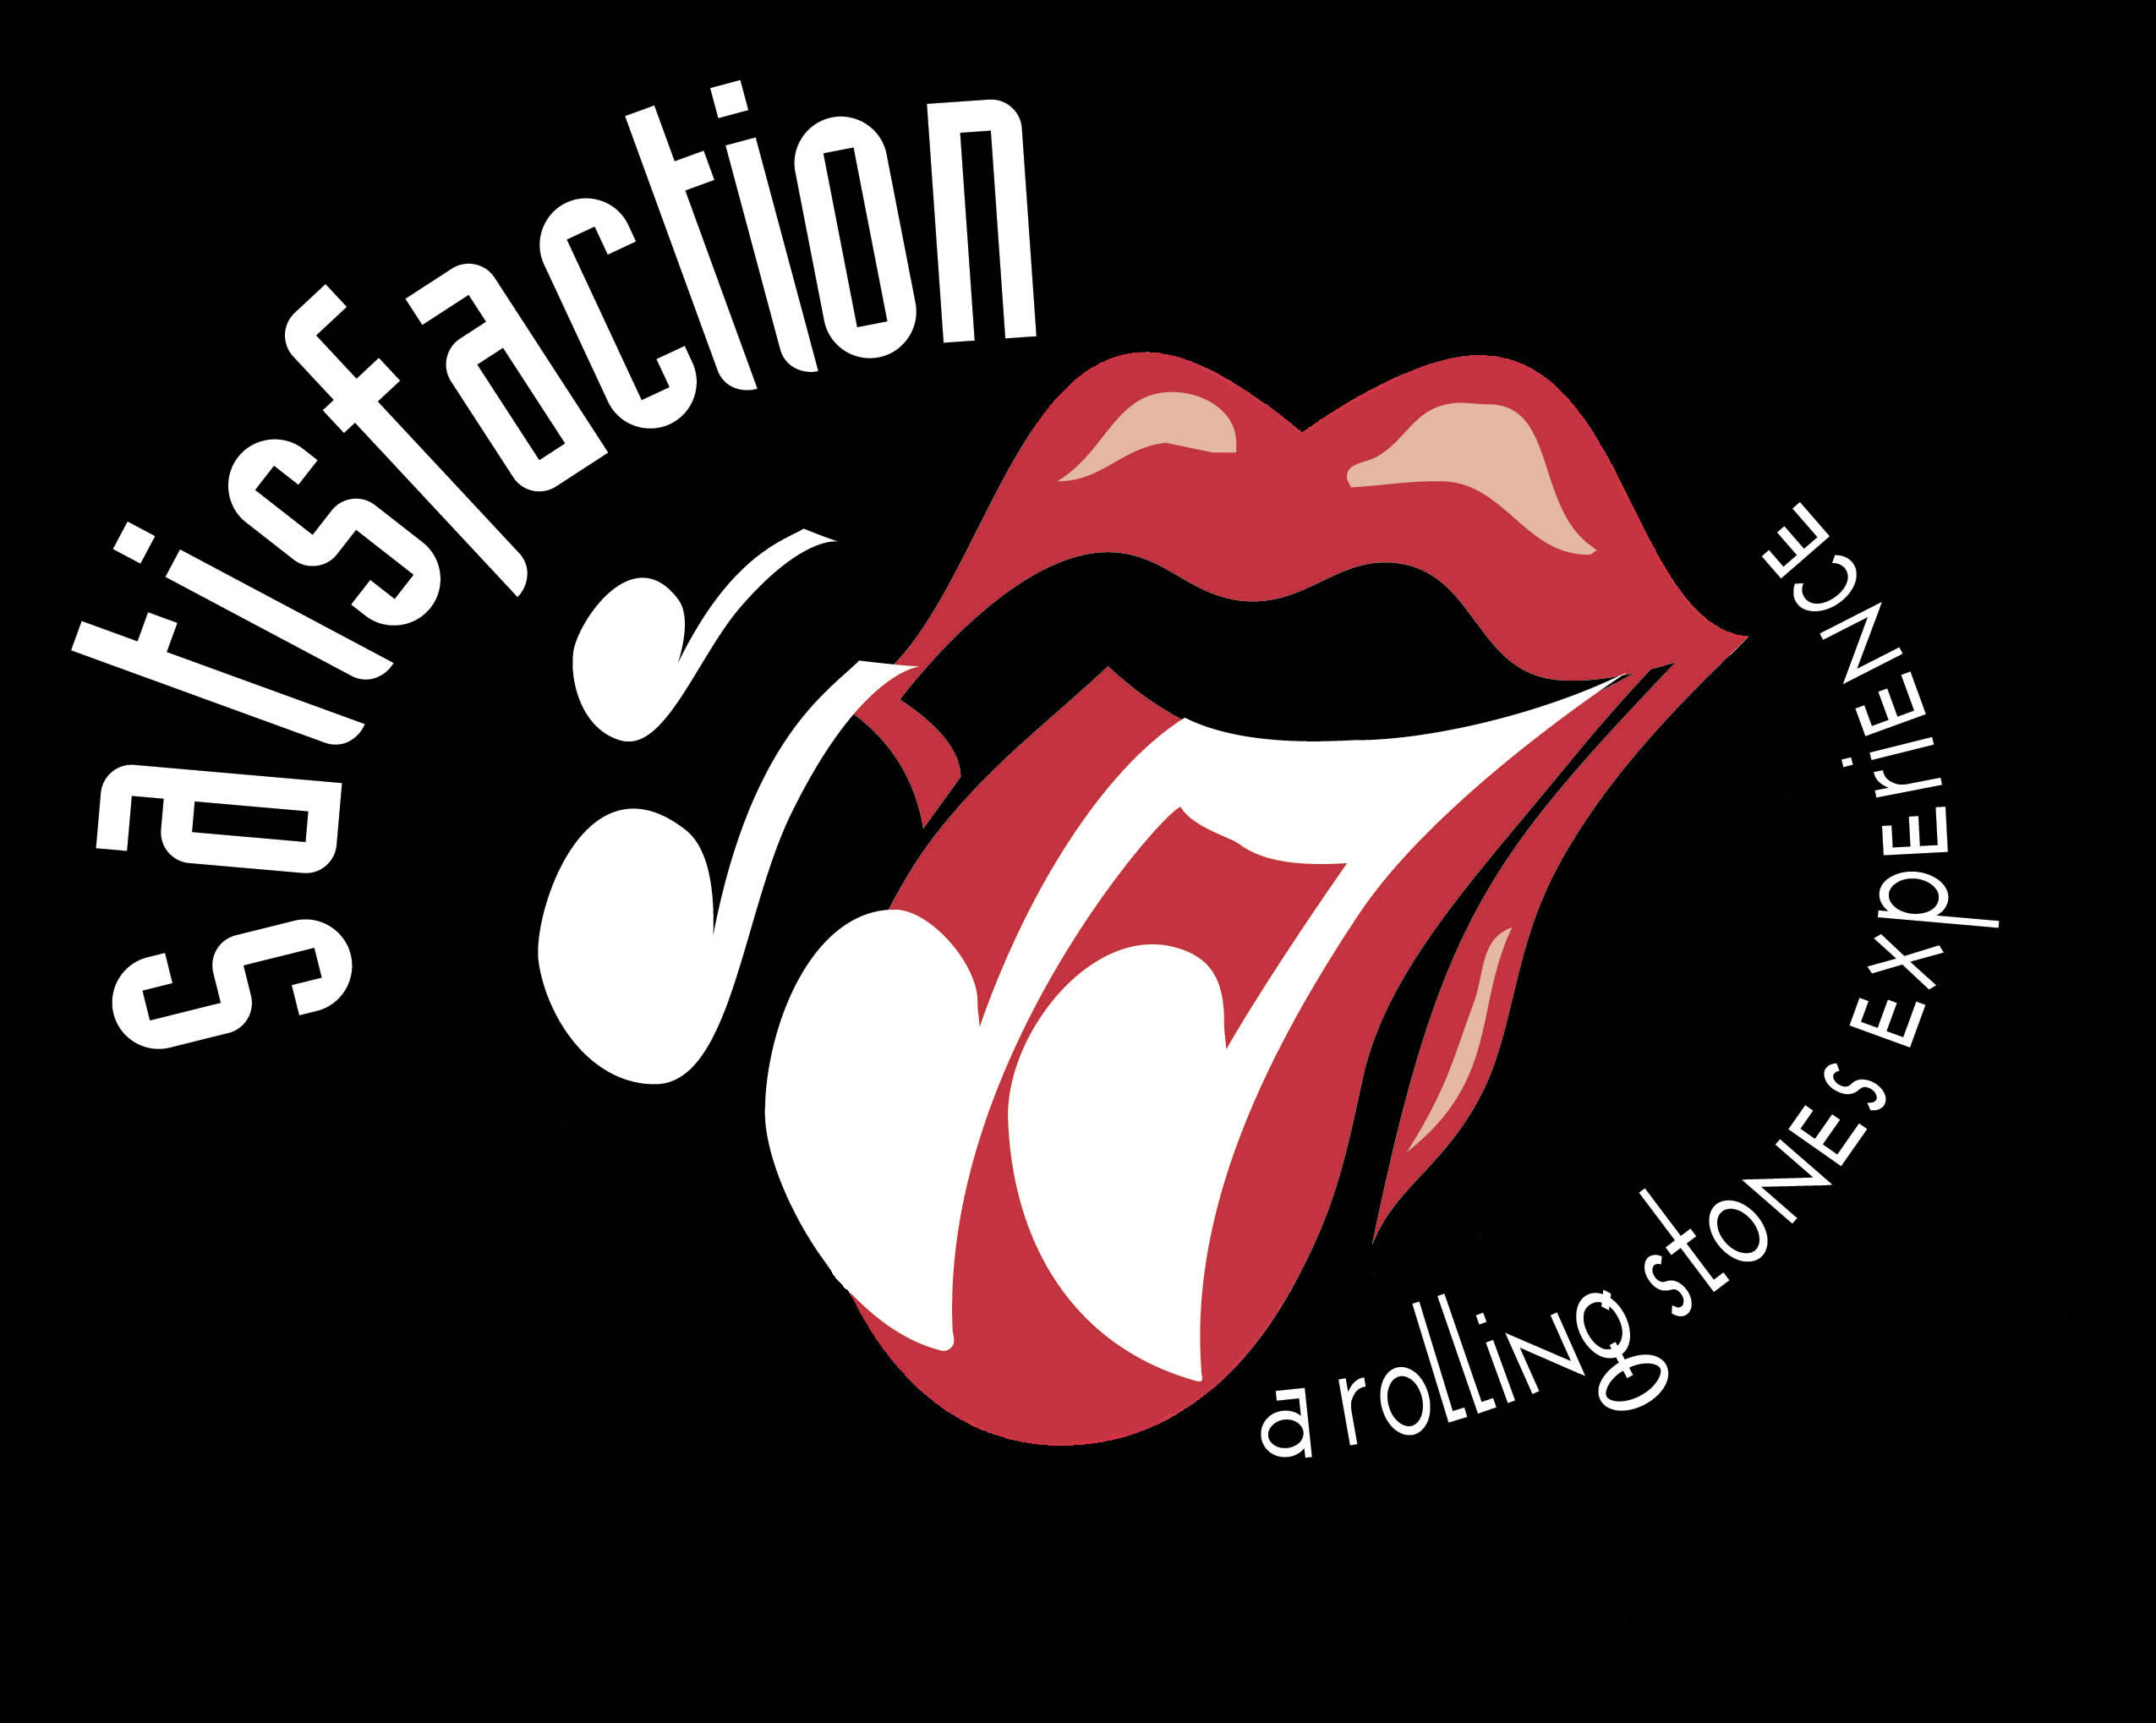 Music Rolling Stones The